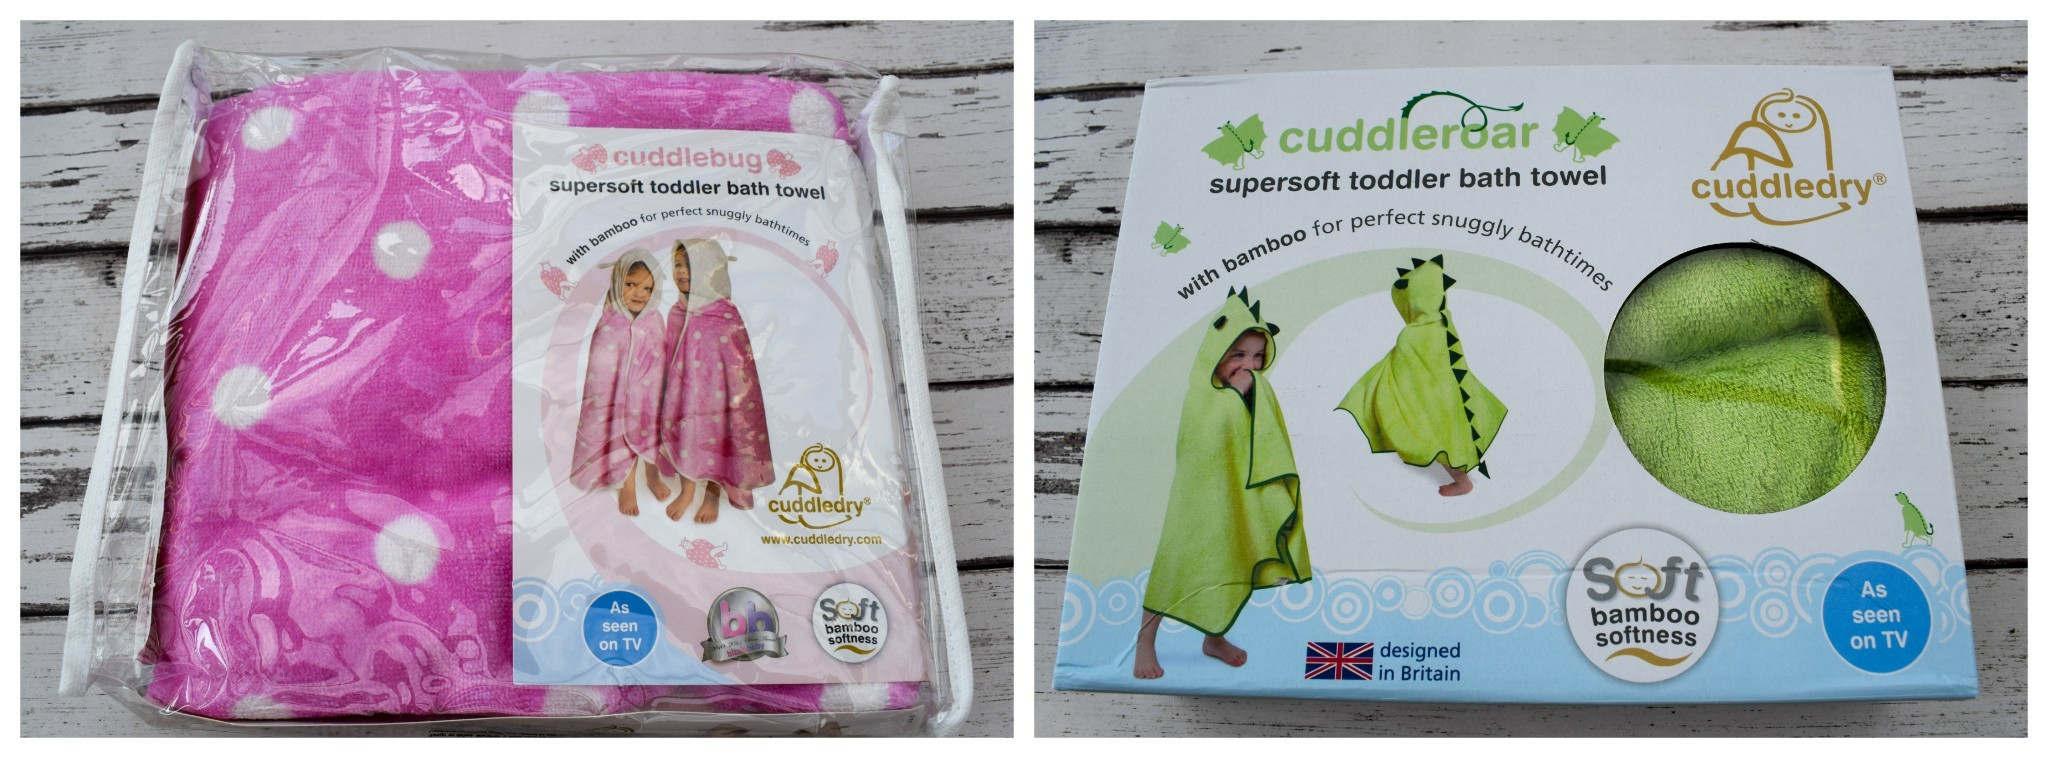 Cuddledry toddler towels - the delivery